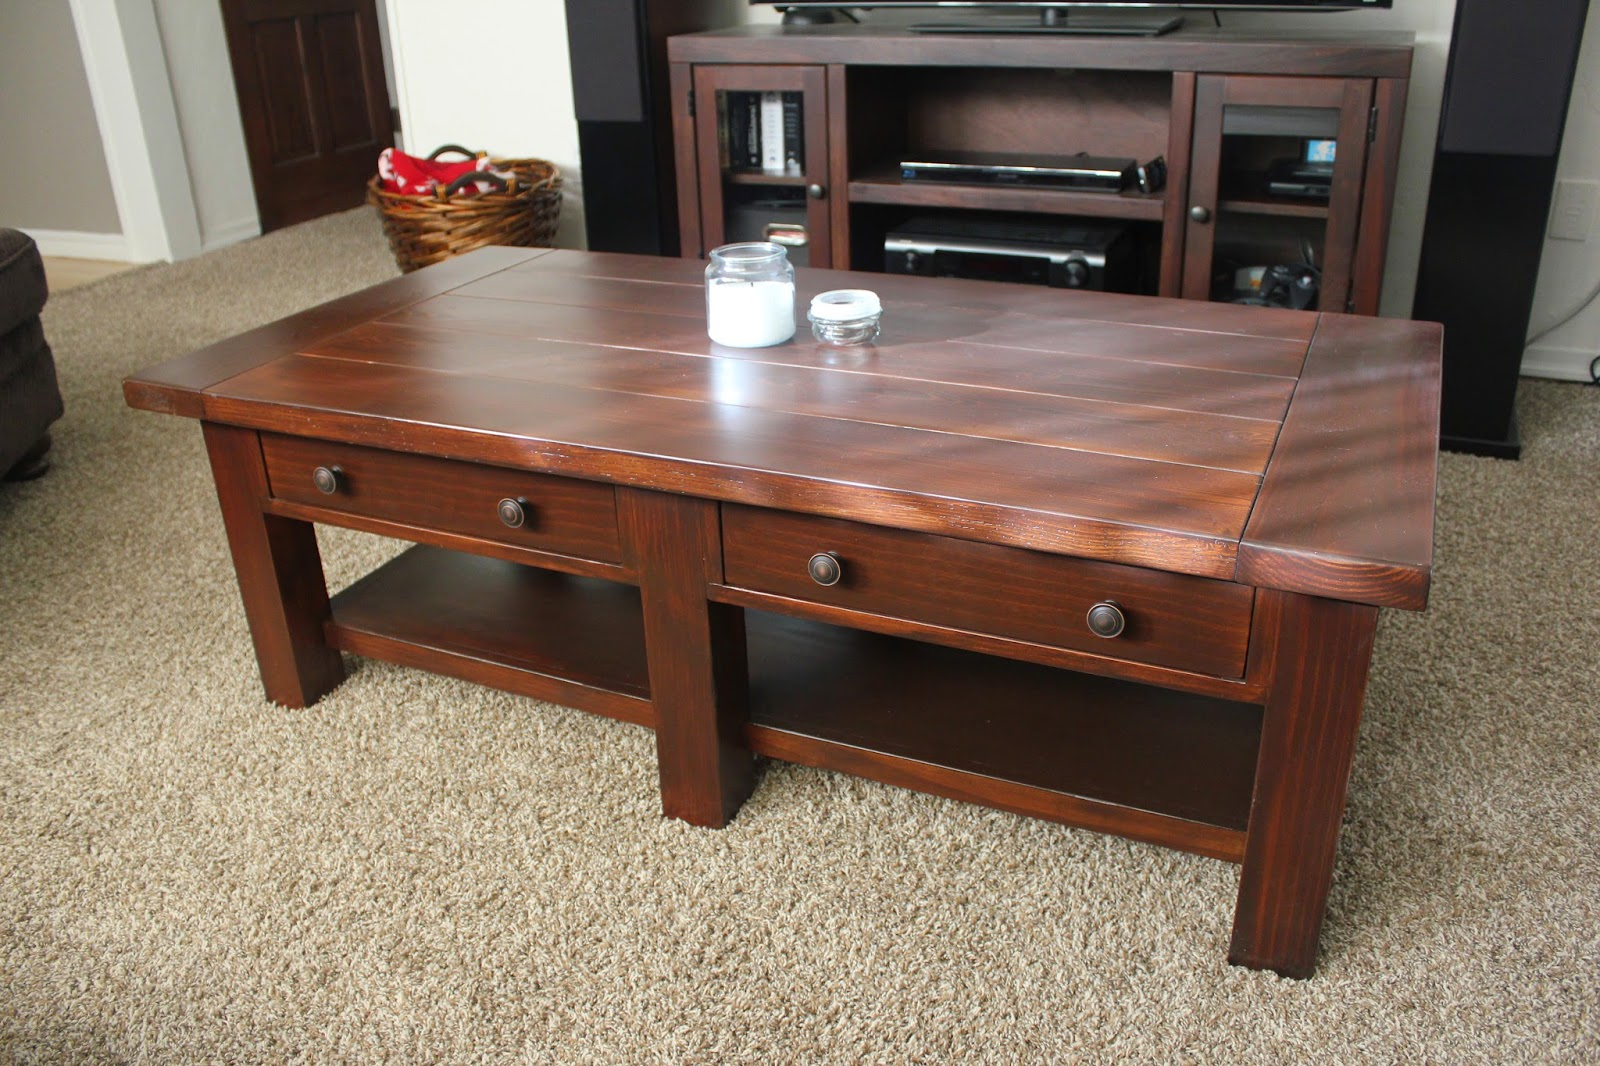 Furniture building pb inspired benchwright coffee table pb inspired benchwright coffee table geotapseo Choice Image